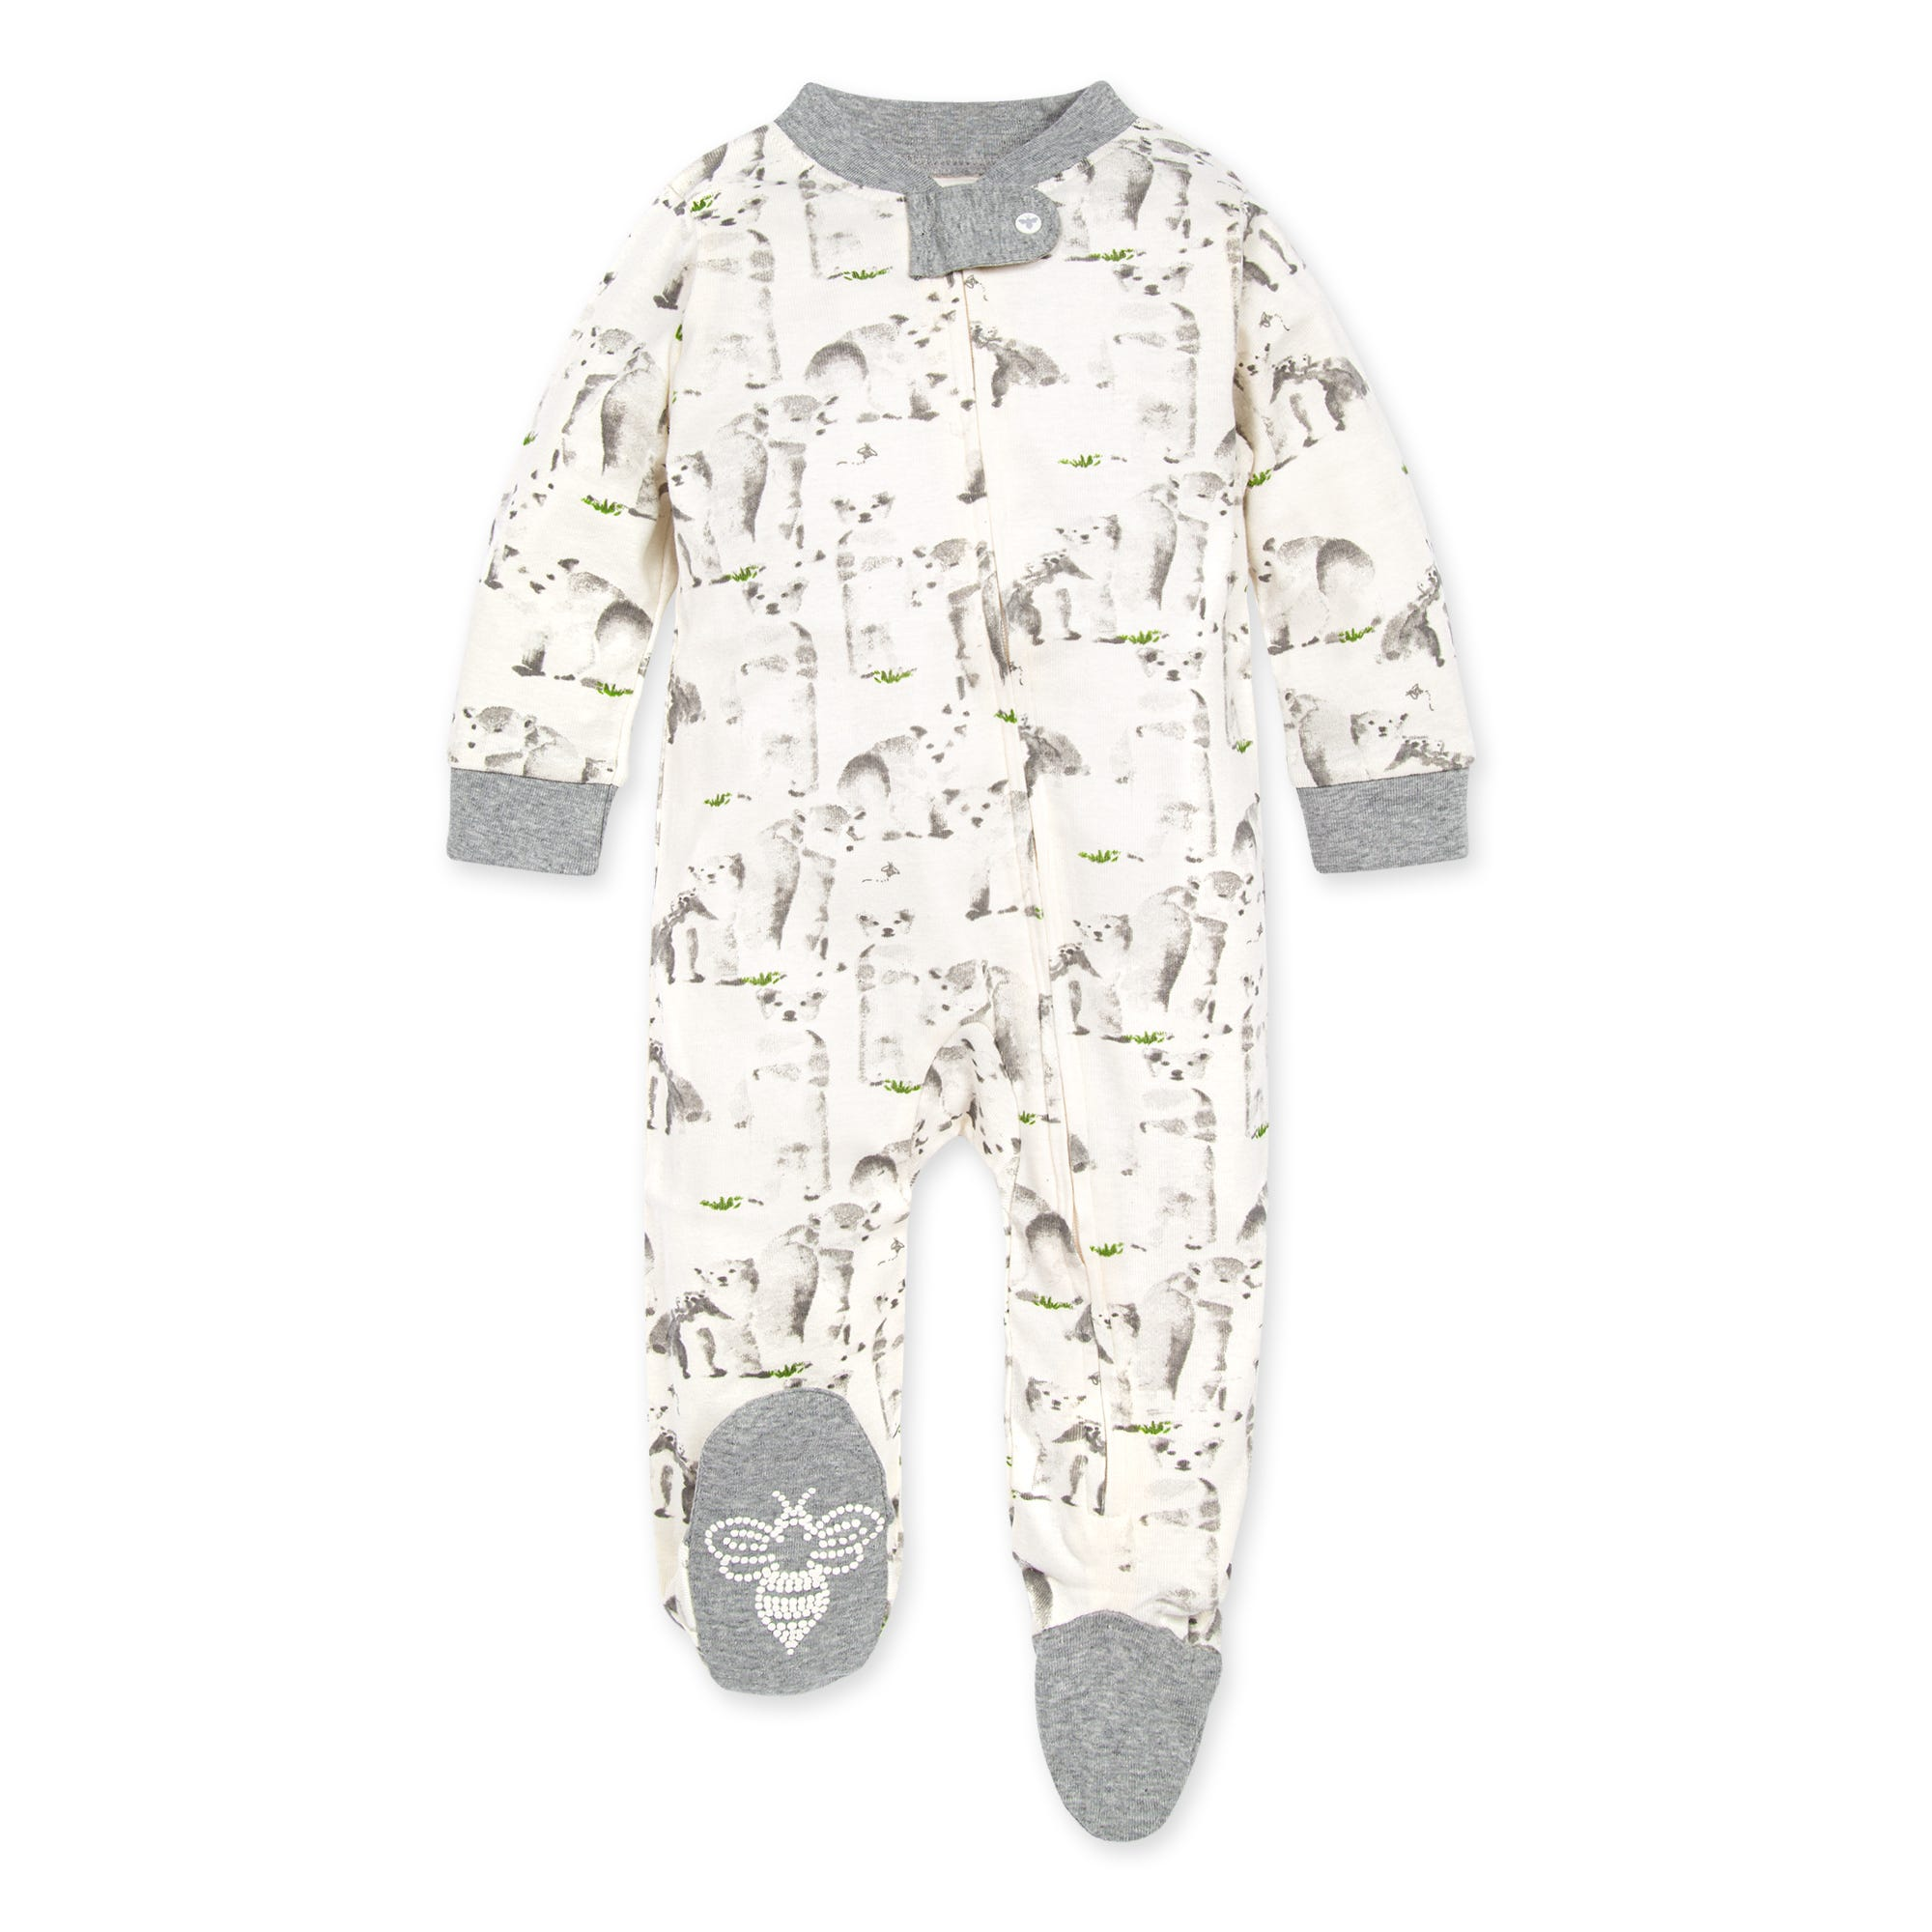 Buzz Loading Baby Pajamas Bodysuits Clothes Onesies Jumpsuits Outfits Black